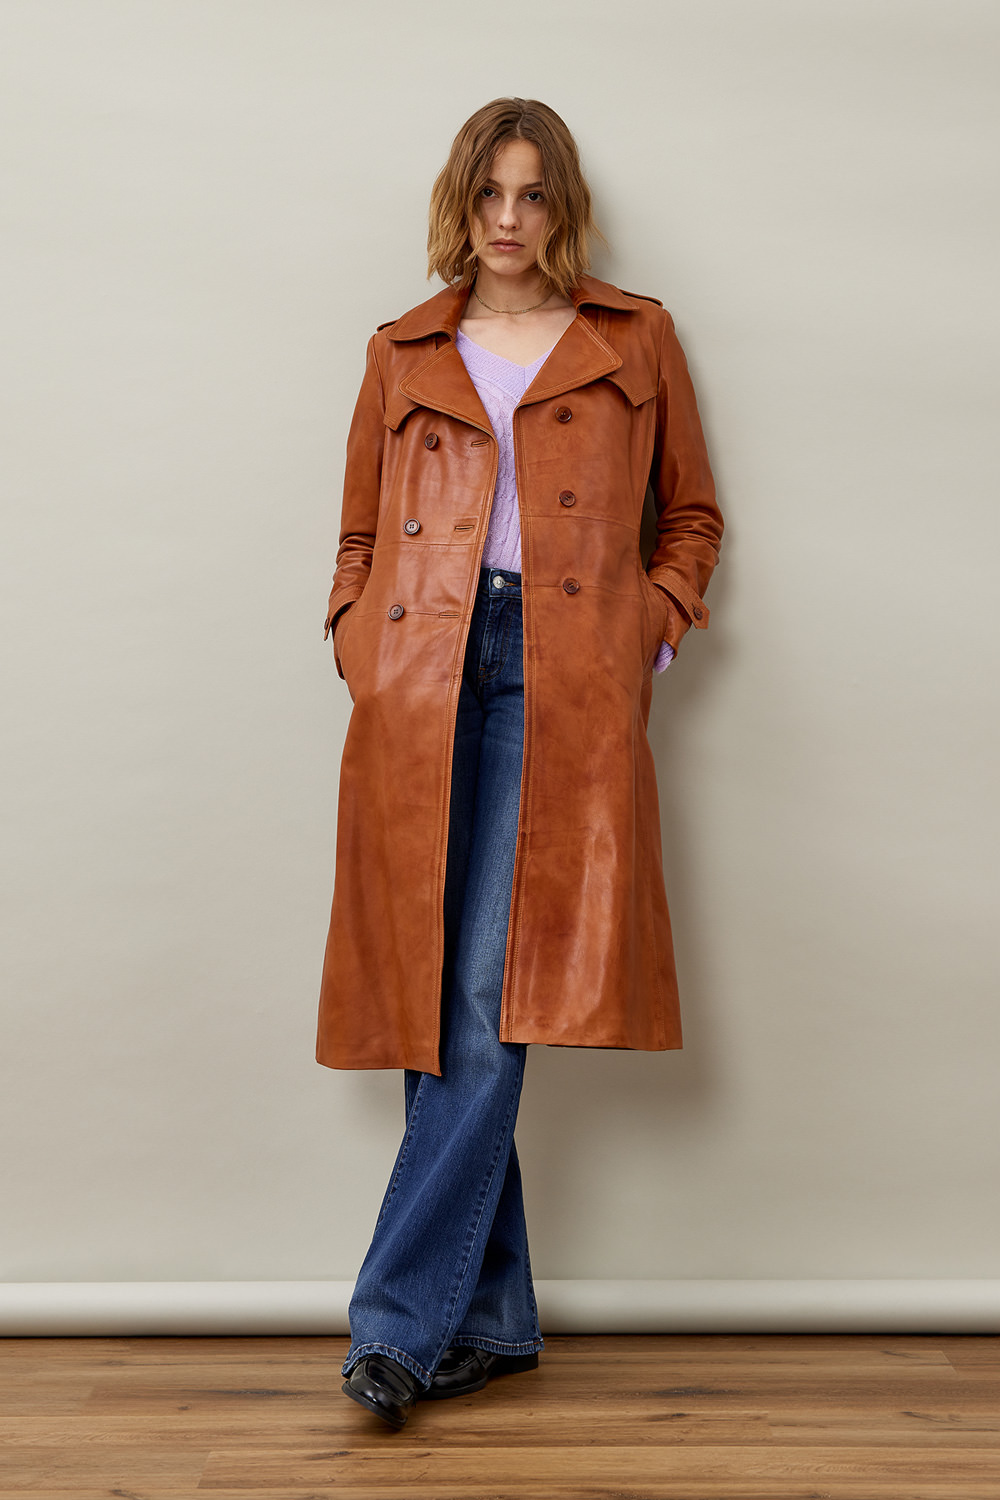 ROY ROGERS: RE-ISSUE TRENCH COAT IN LEATHER